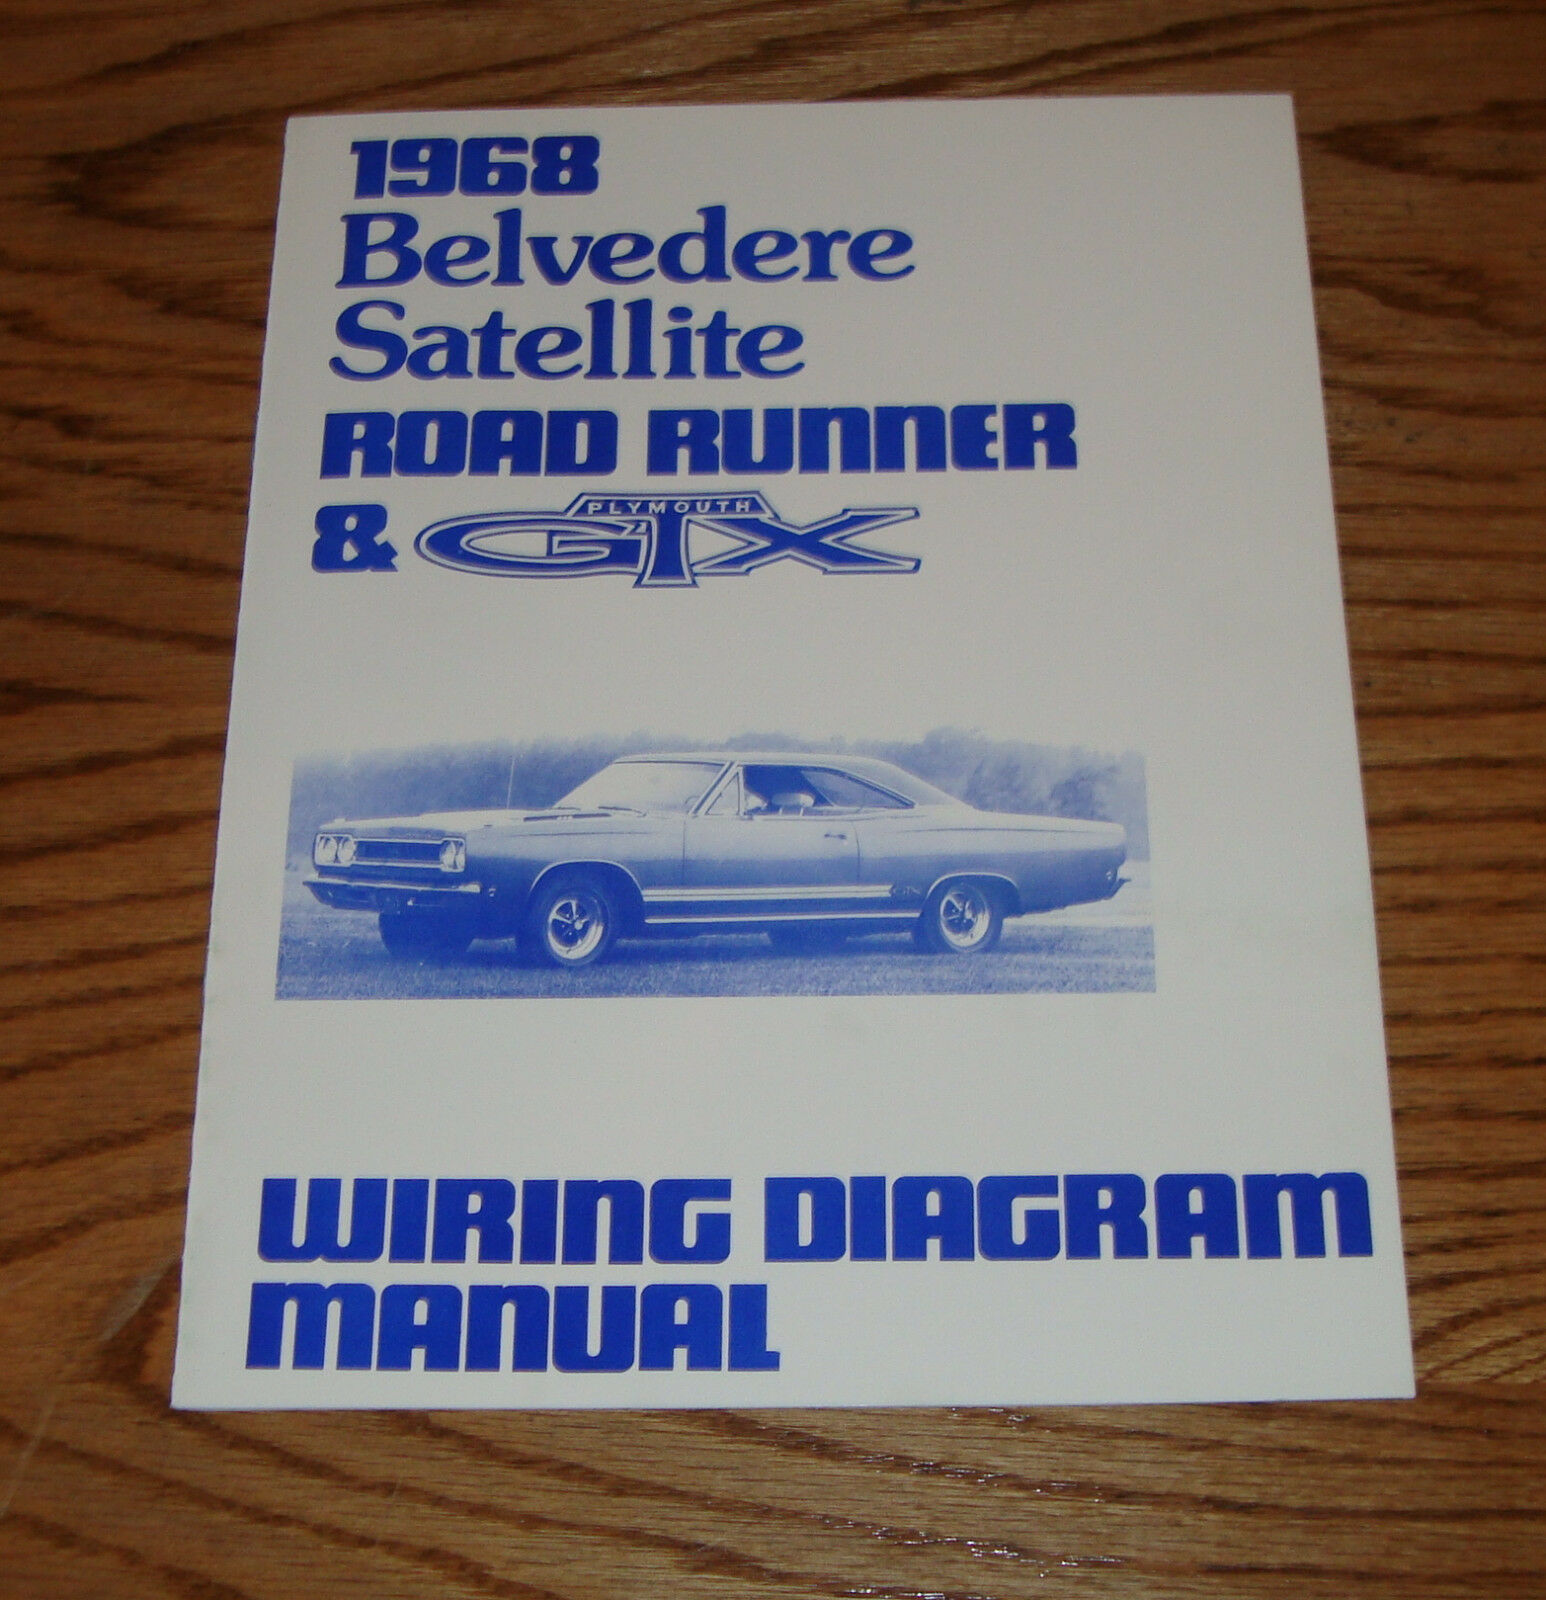 1968 Plymouth Belvedere Satellite Road Runner Gtx Wiring Diagram Coronet Engine Manual 68 1 Of 1only 2 Available See More